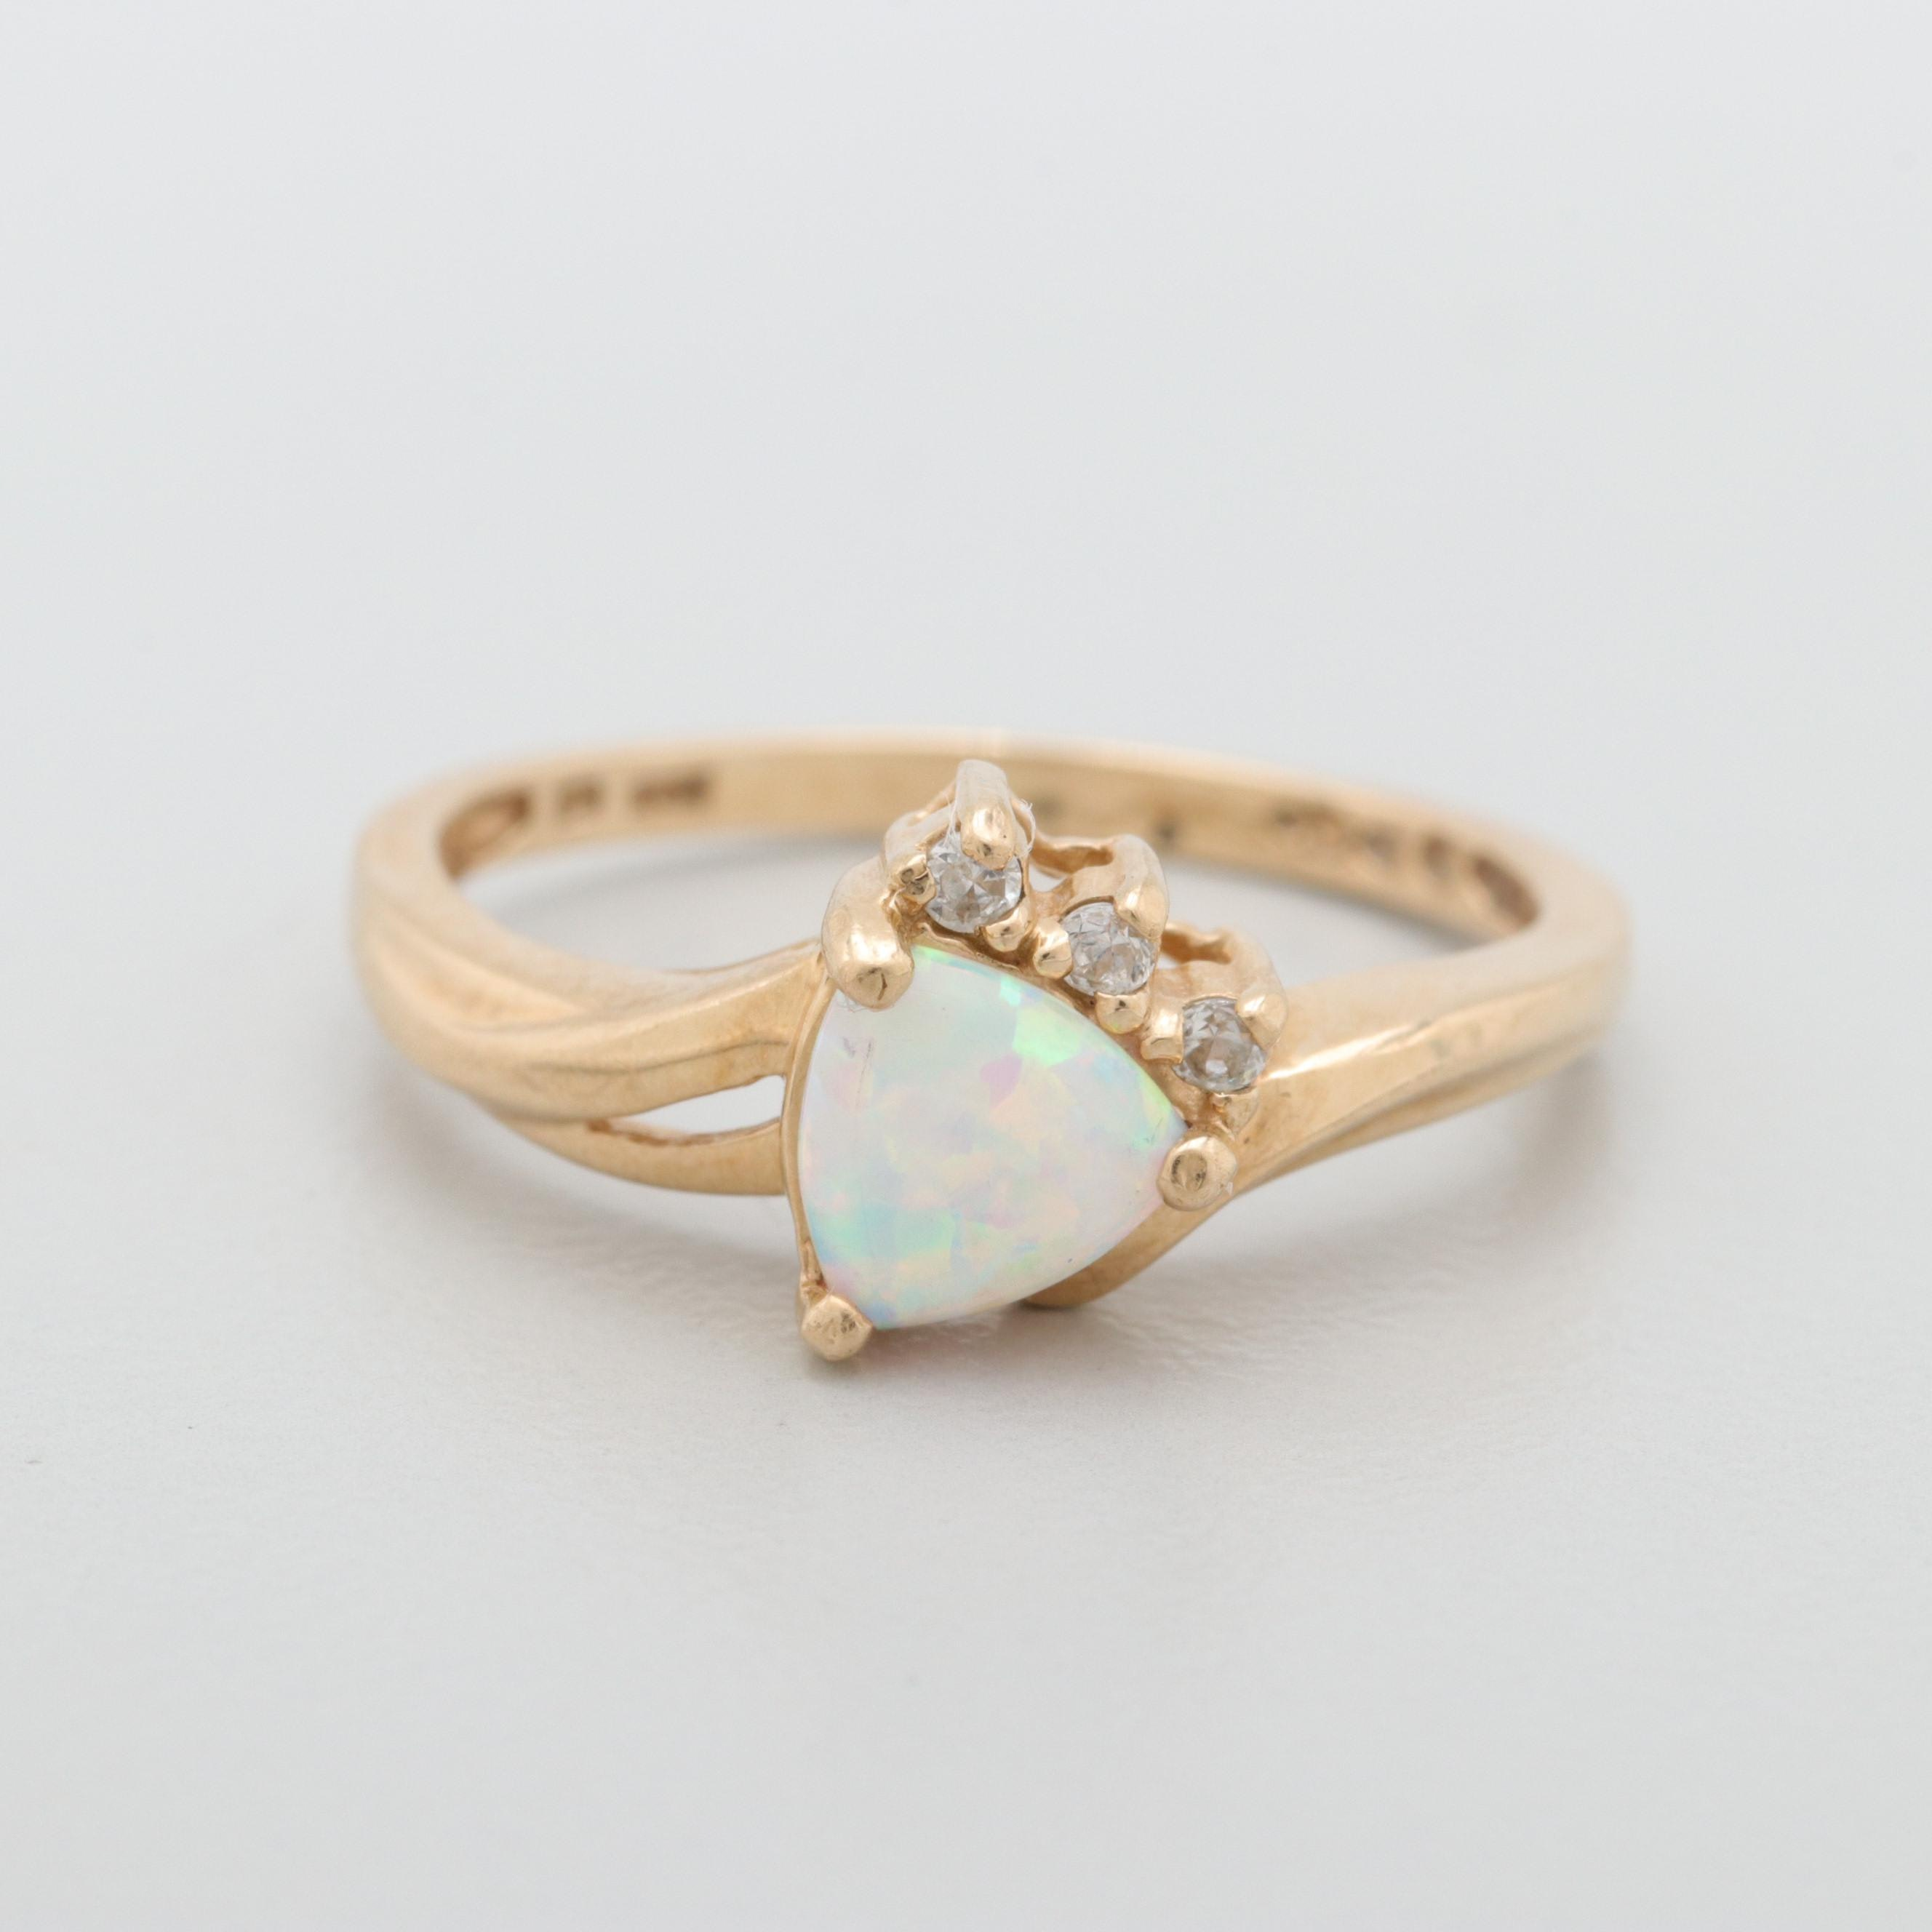 10K Yellow Gold Opal and Cubic Zirconia Ring